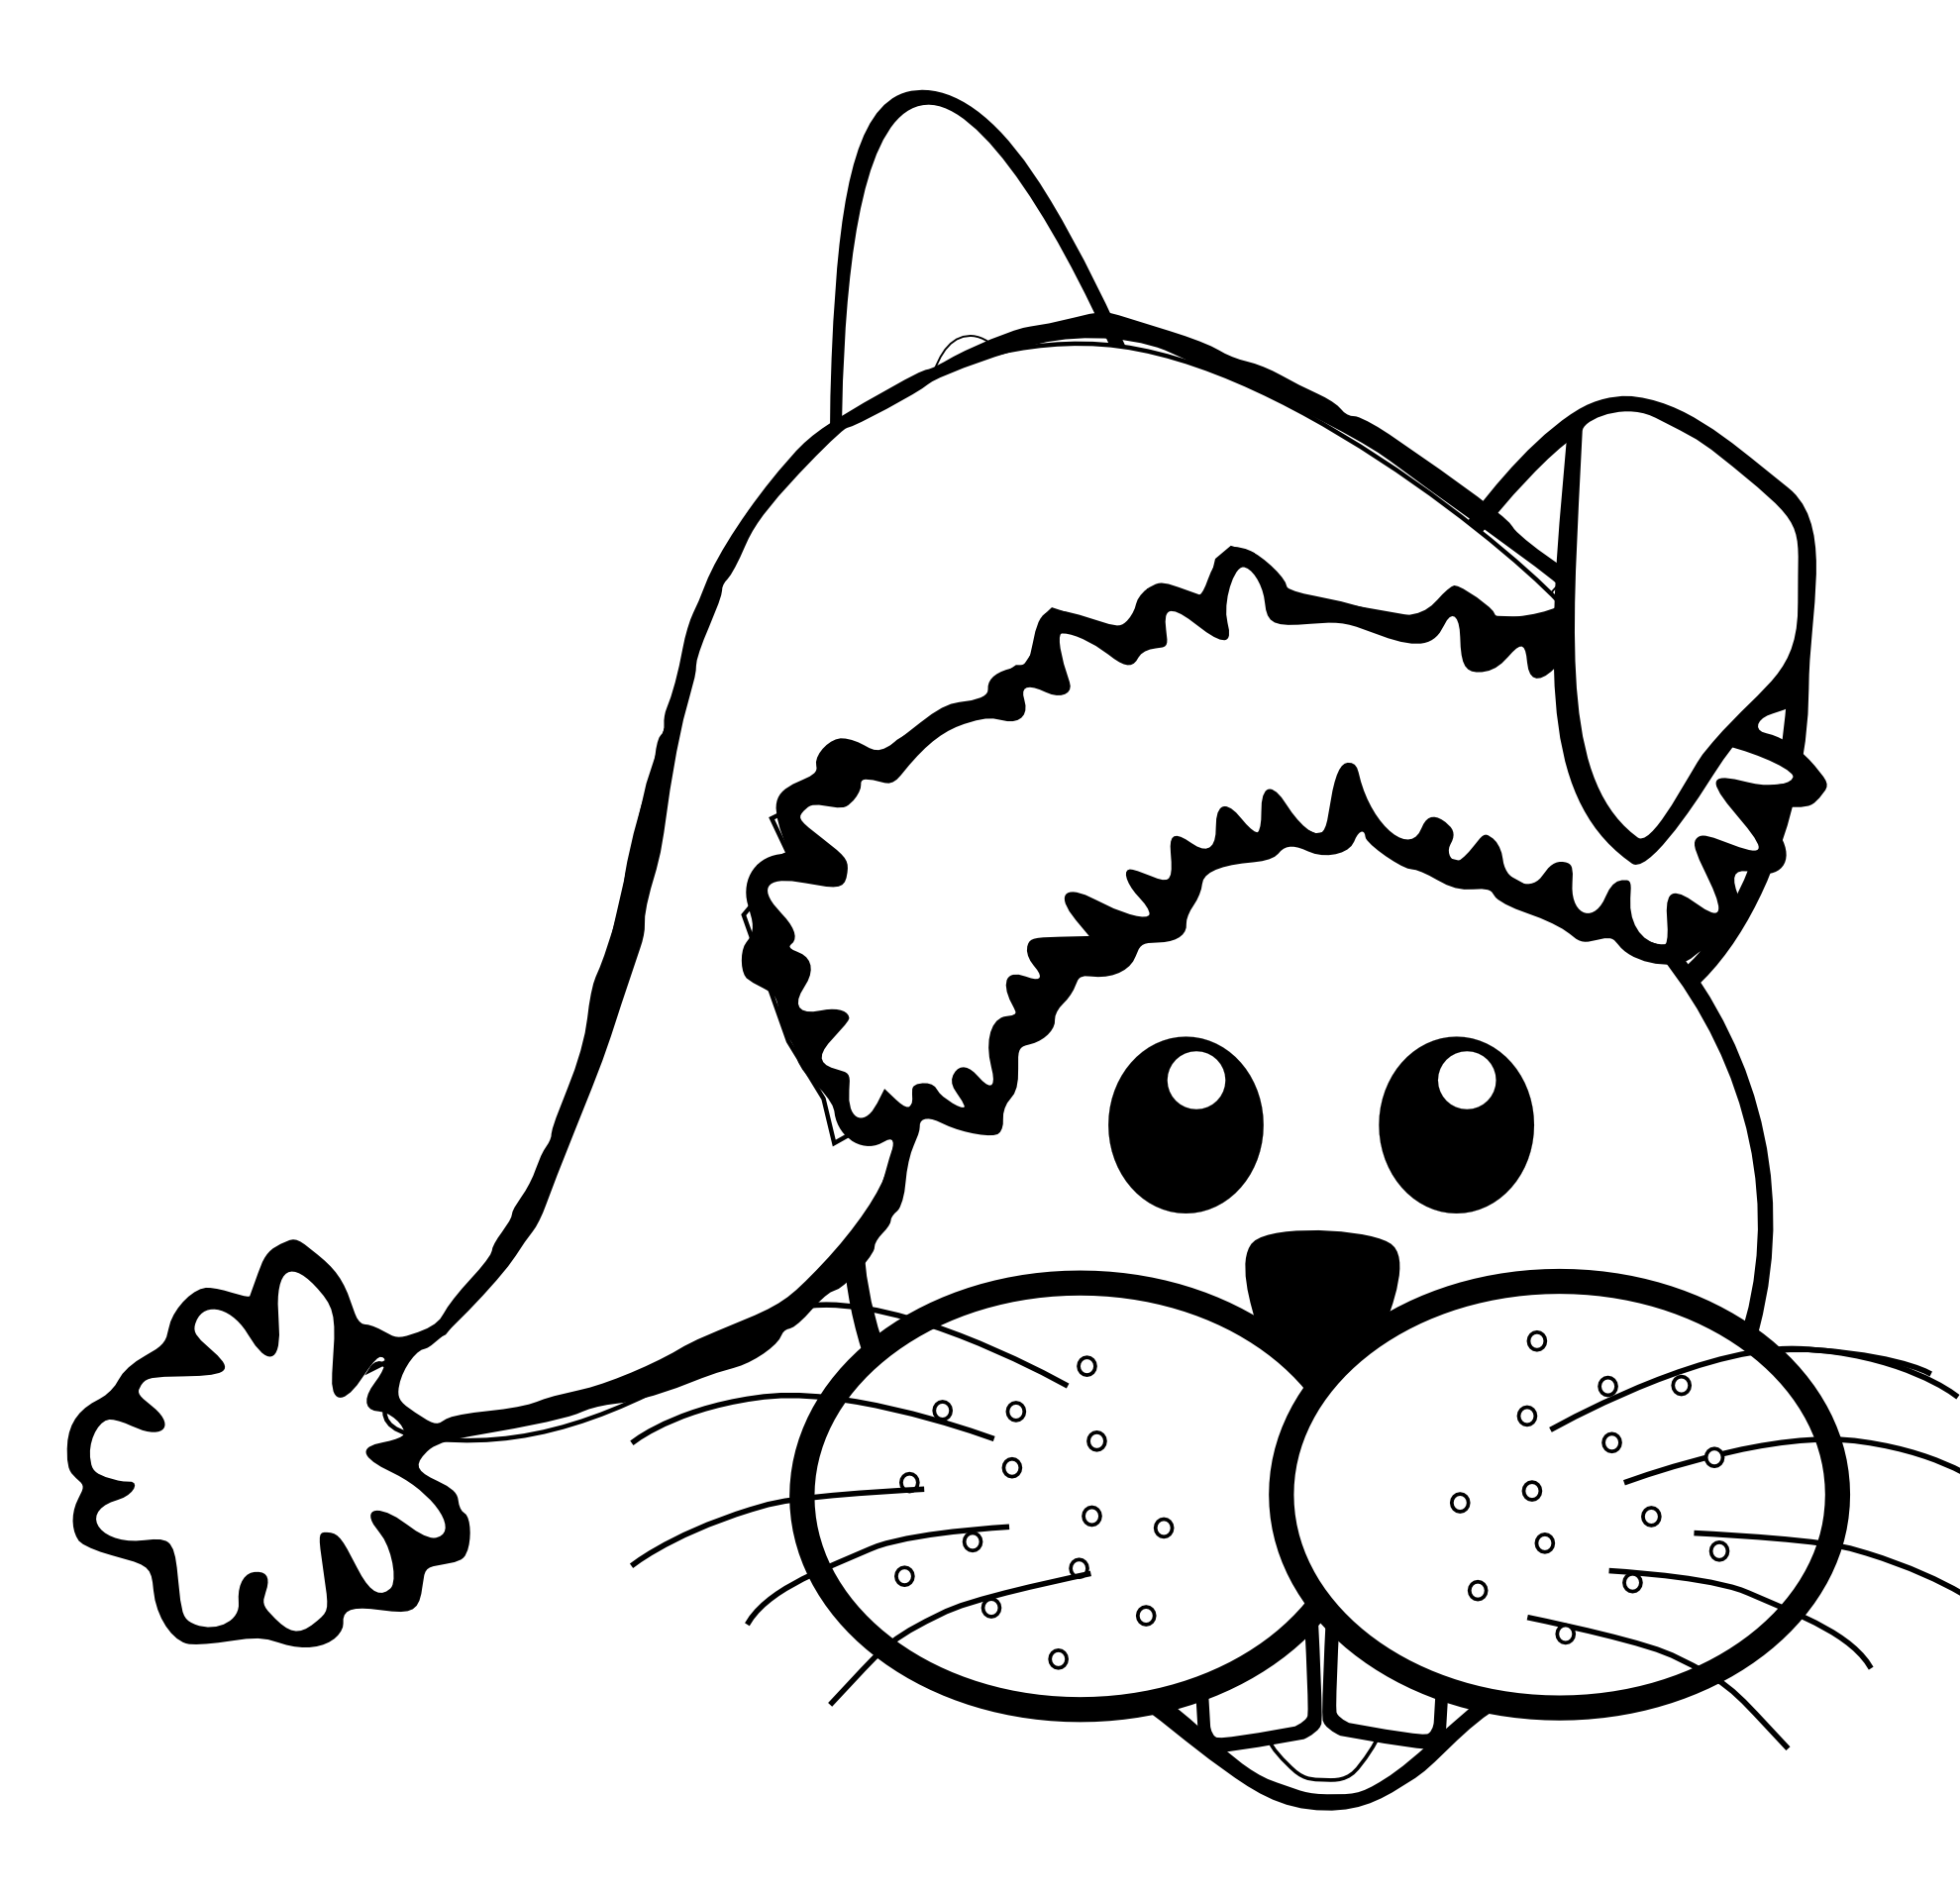 Line Drawing Of Rabbit Face : Rabbit face clipart panda free images